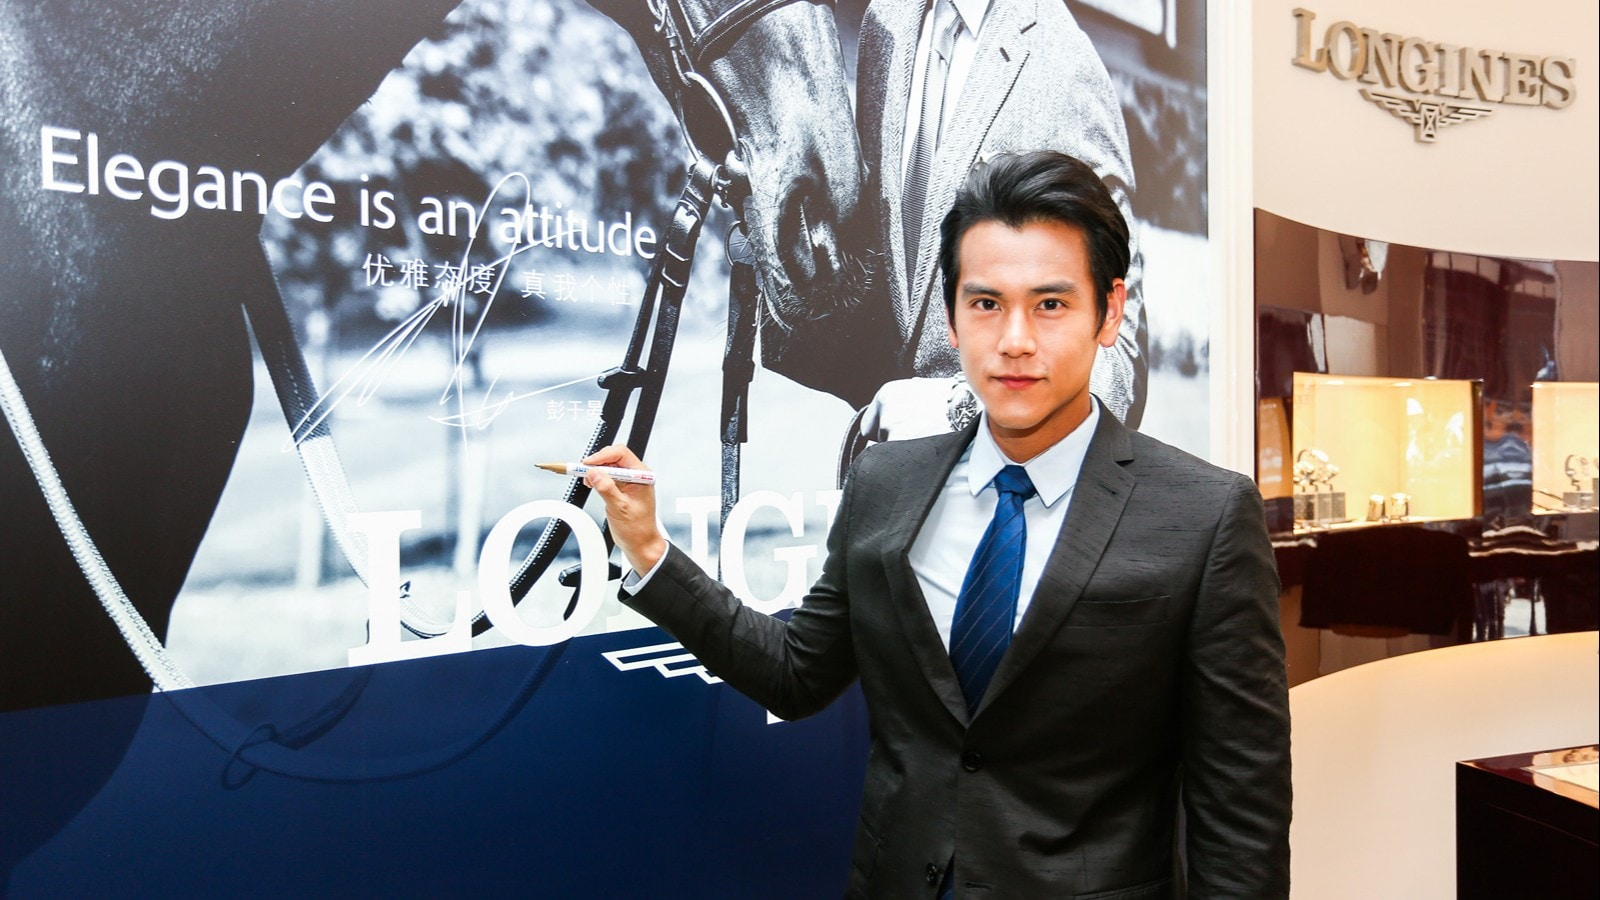 Unveiling ceremony of Longines Taikoo Li Chengdu Corporate Store in presence of Longines Ambassador of Elegance Eddie Peng.